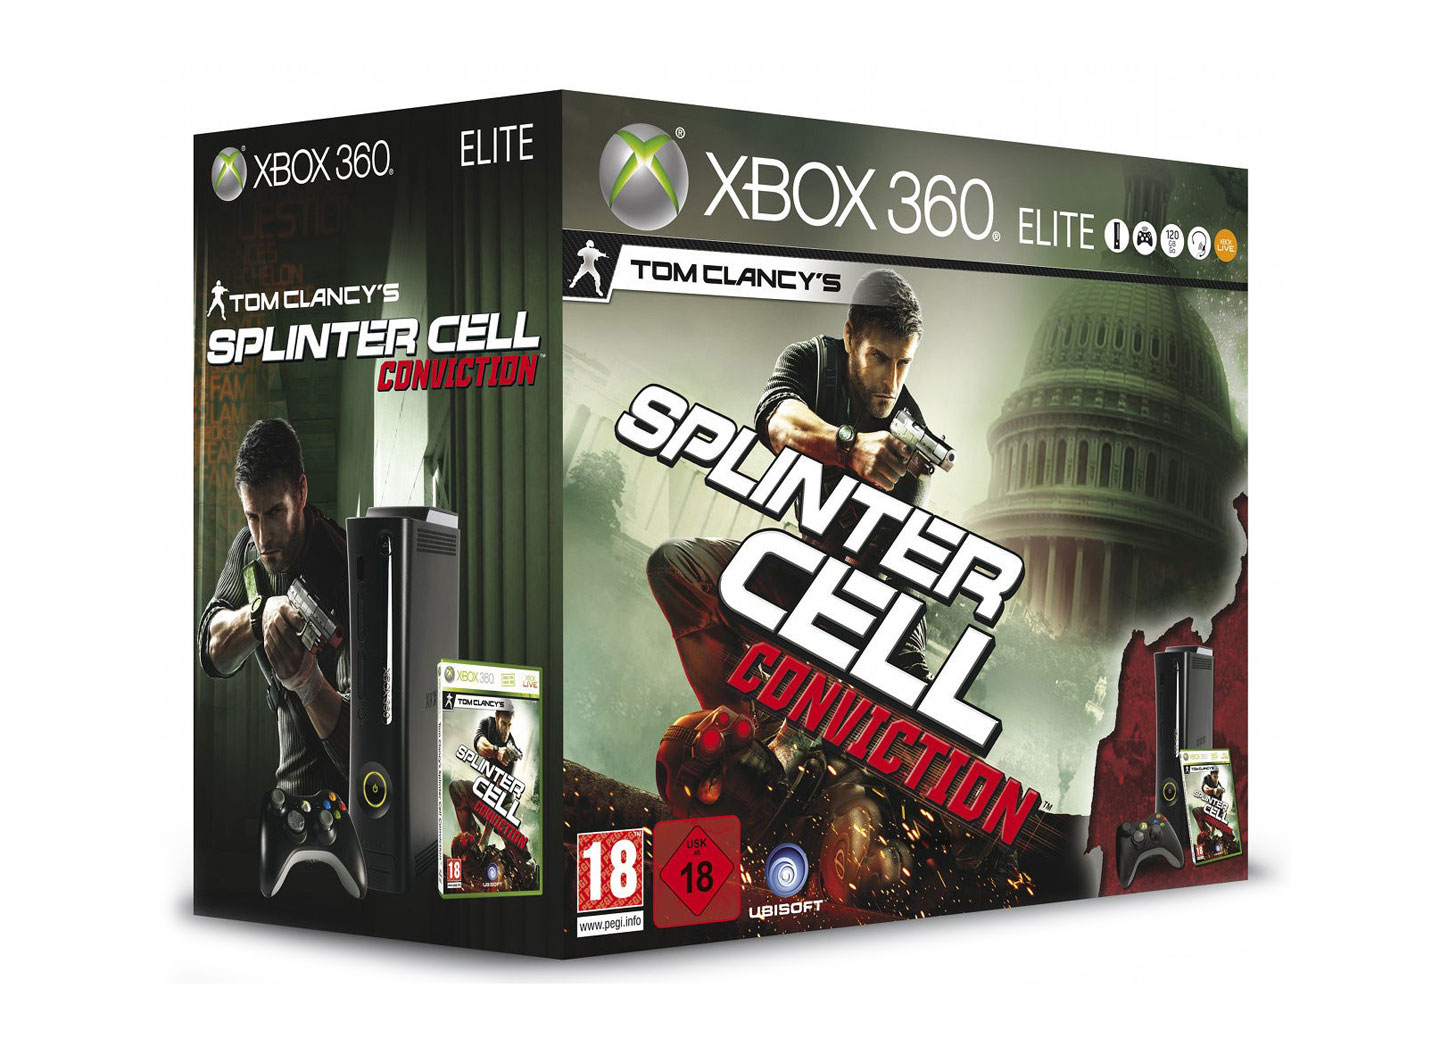 Xbox 360 Elite 120gb Tom Clancys Splinter Cell Conviction Bundle